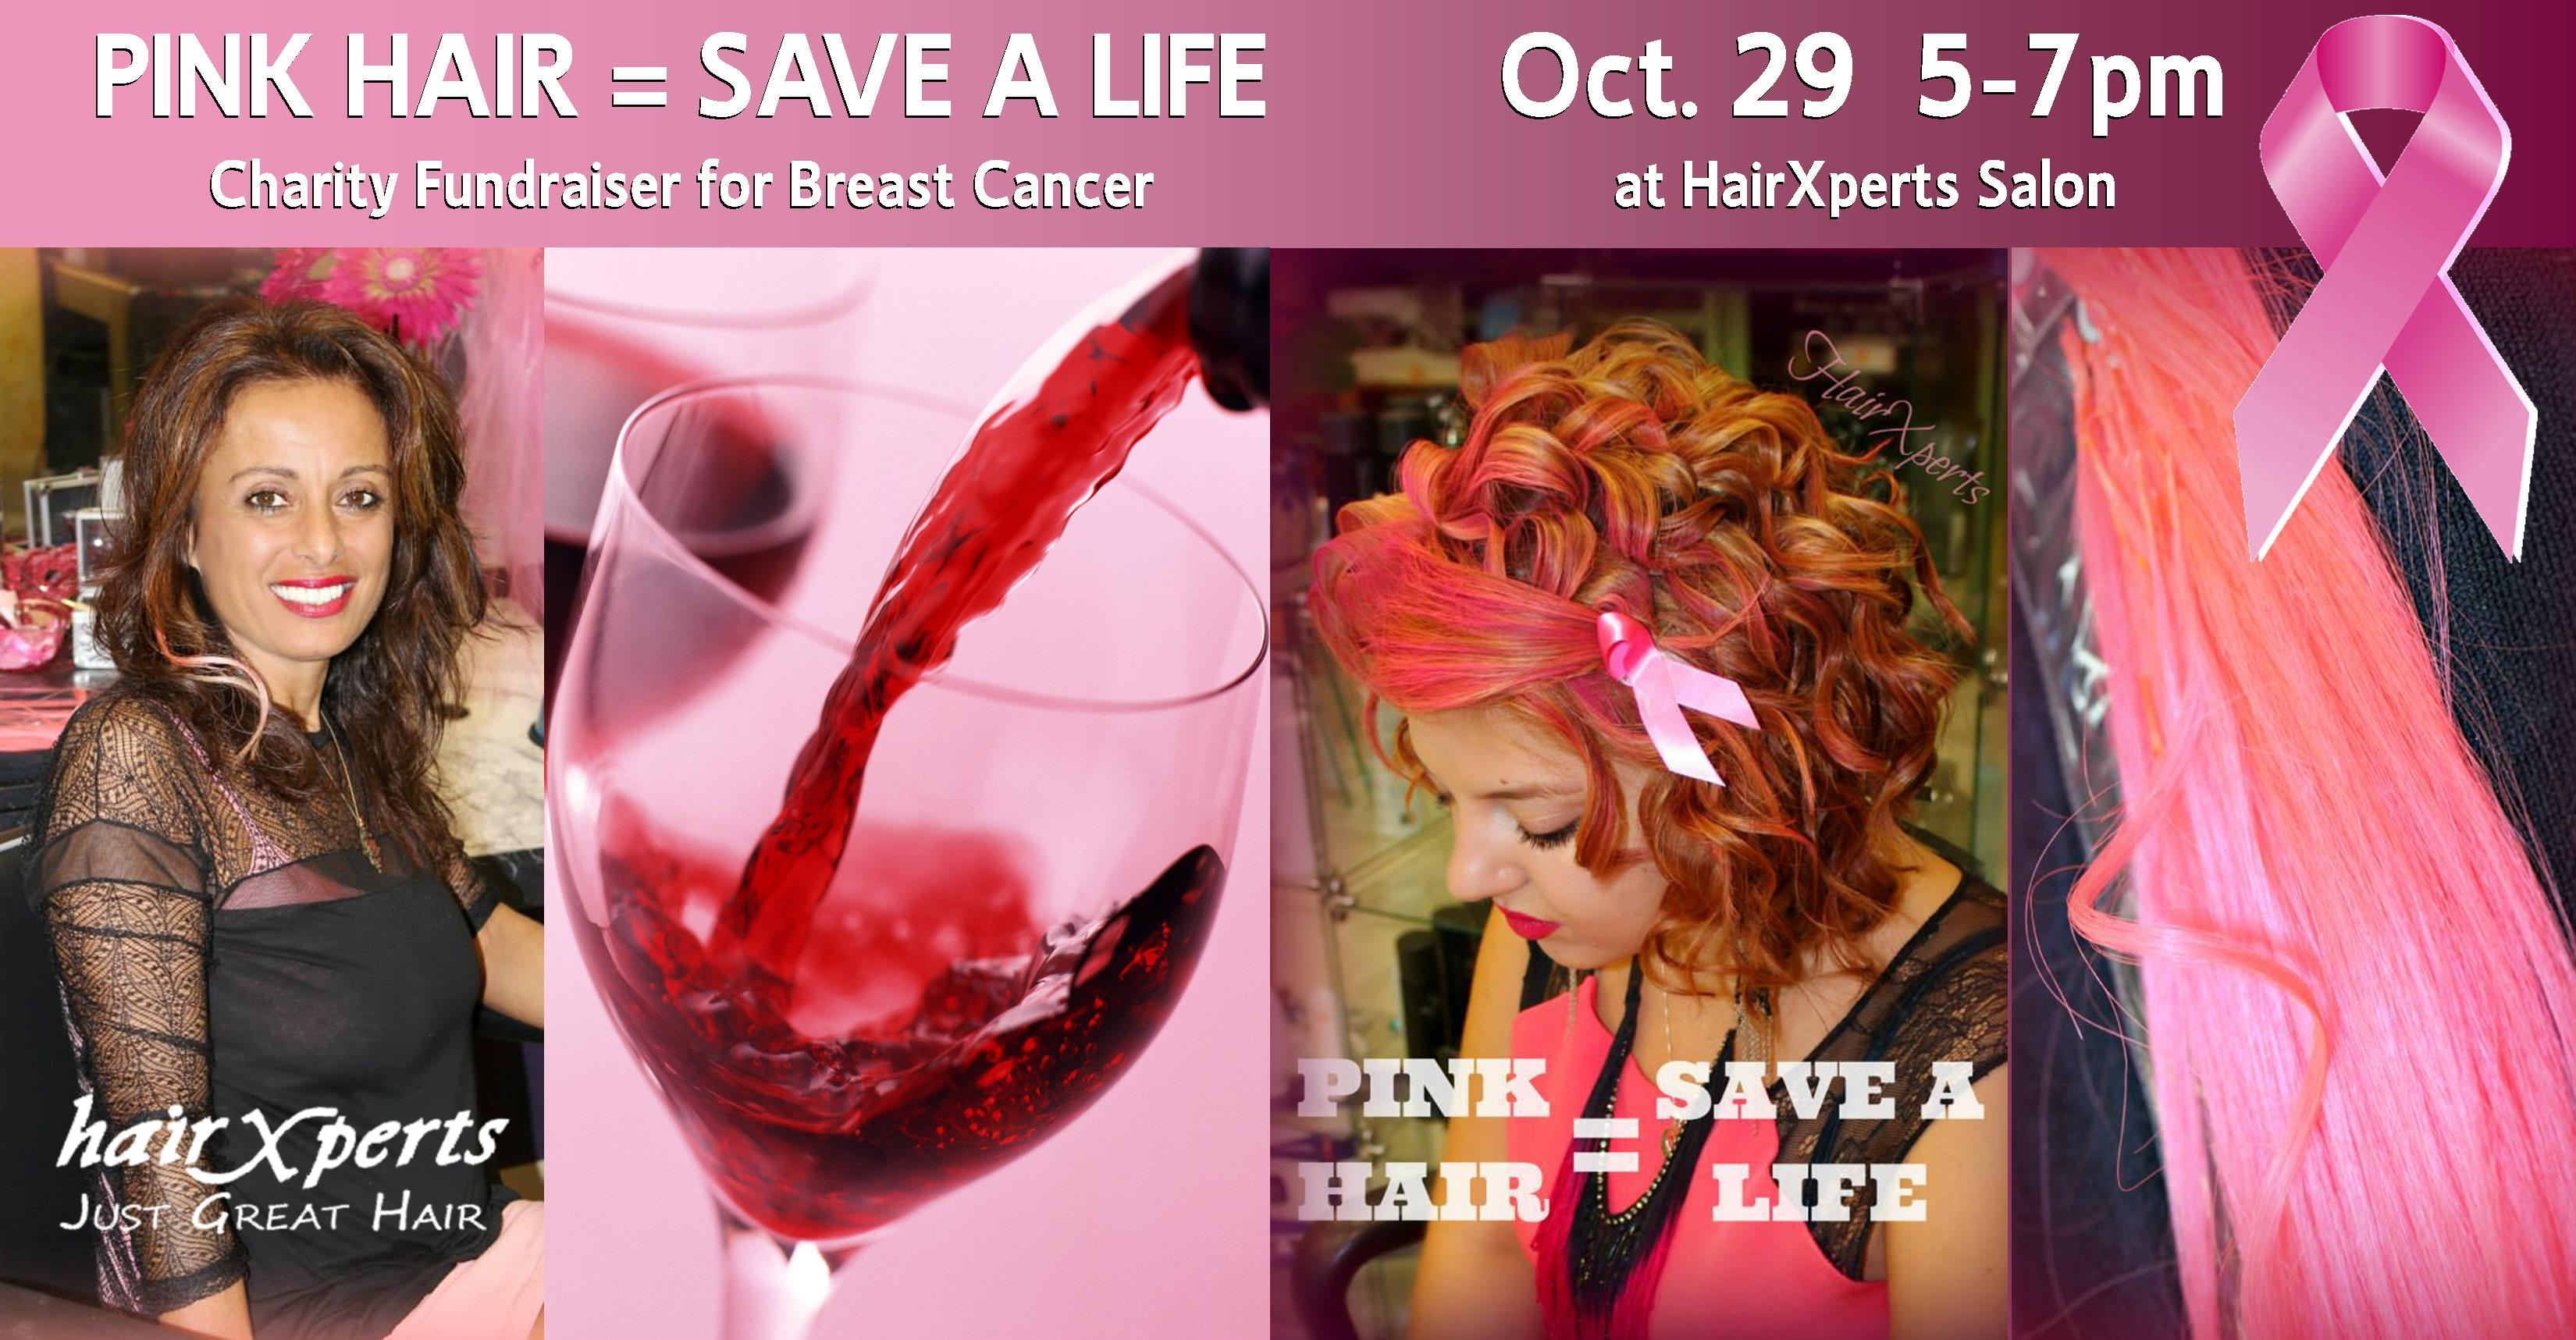 Pink Hair = Save a Life